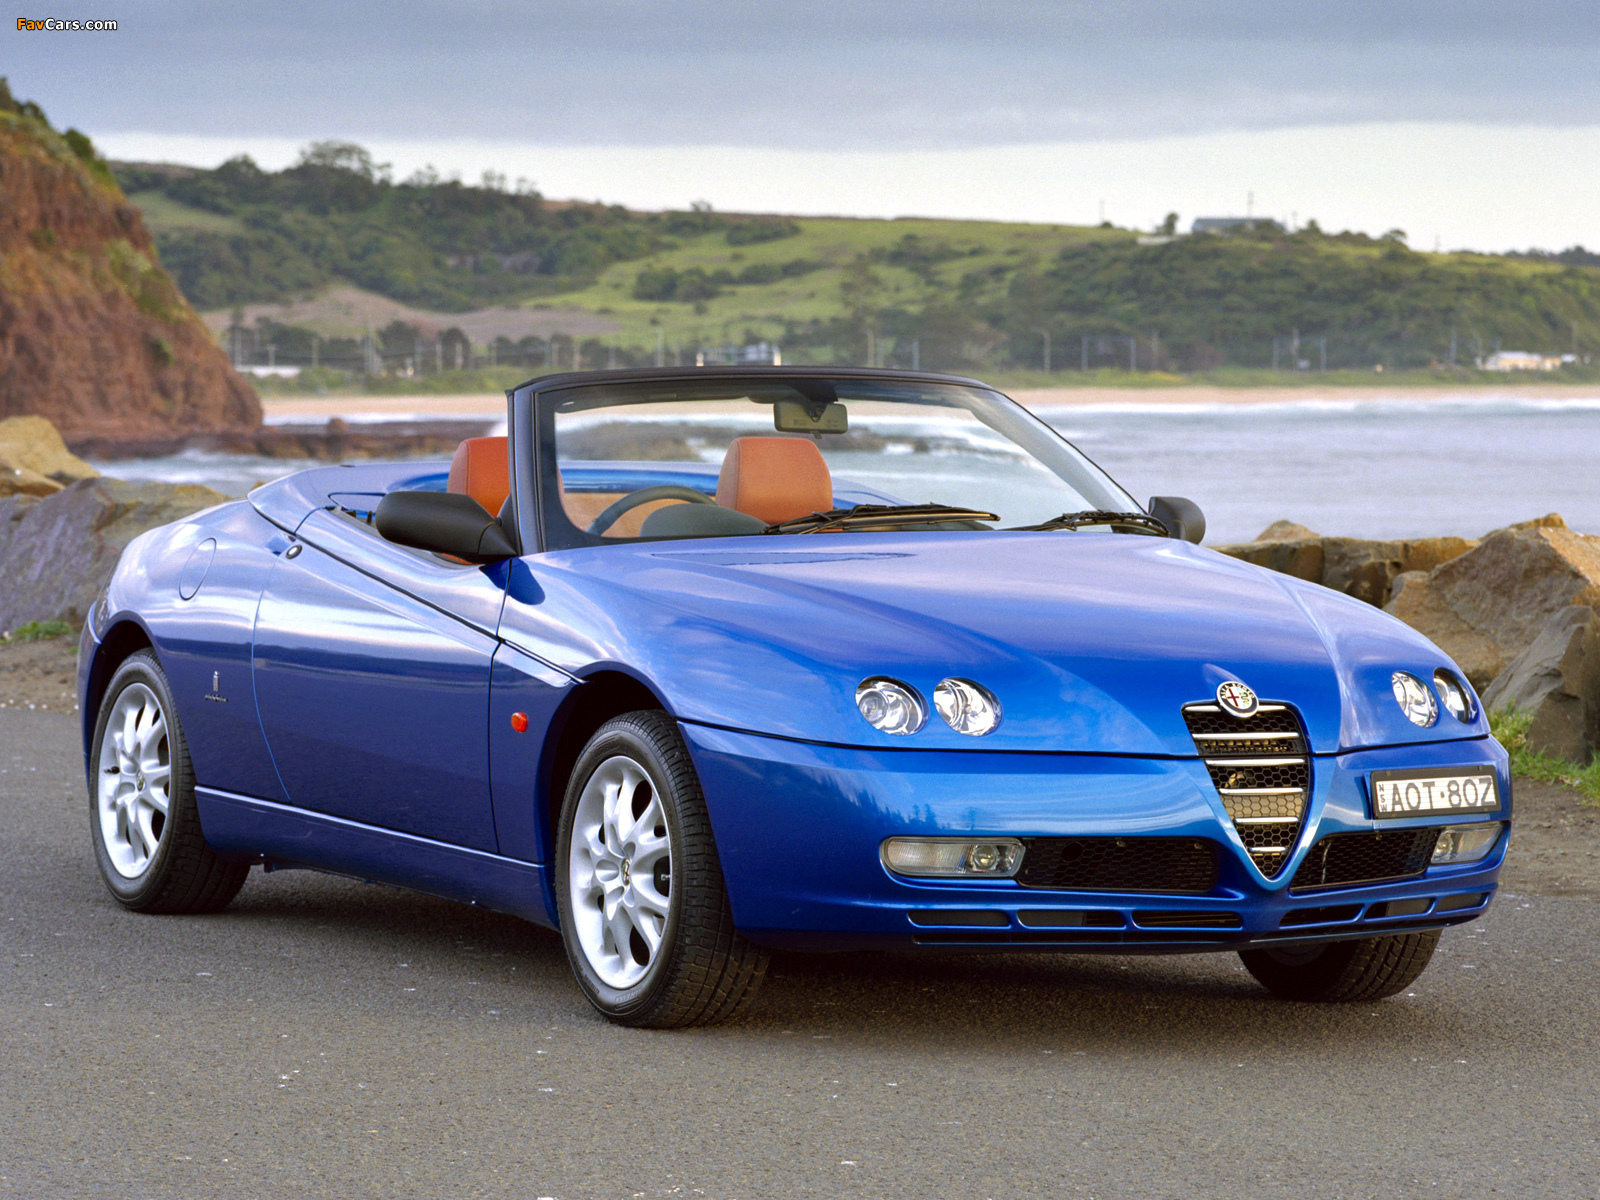 alfa romeo spider images start 150 WeiLi Automotive Network